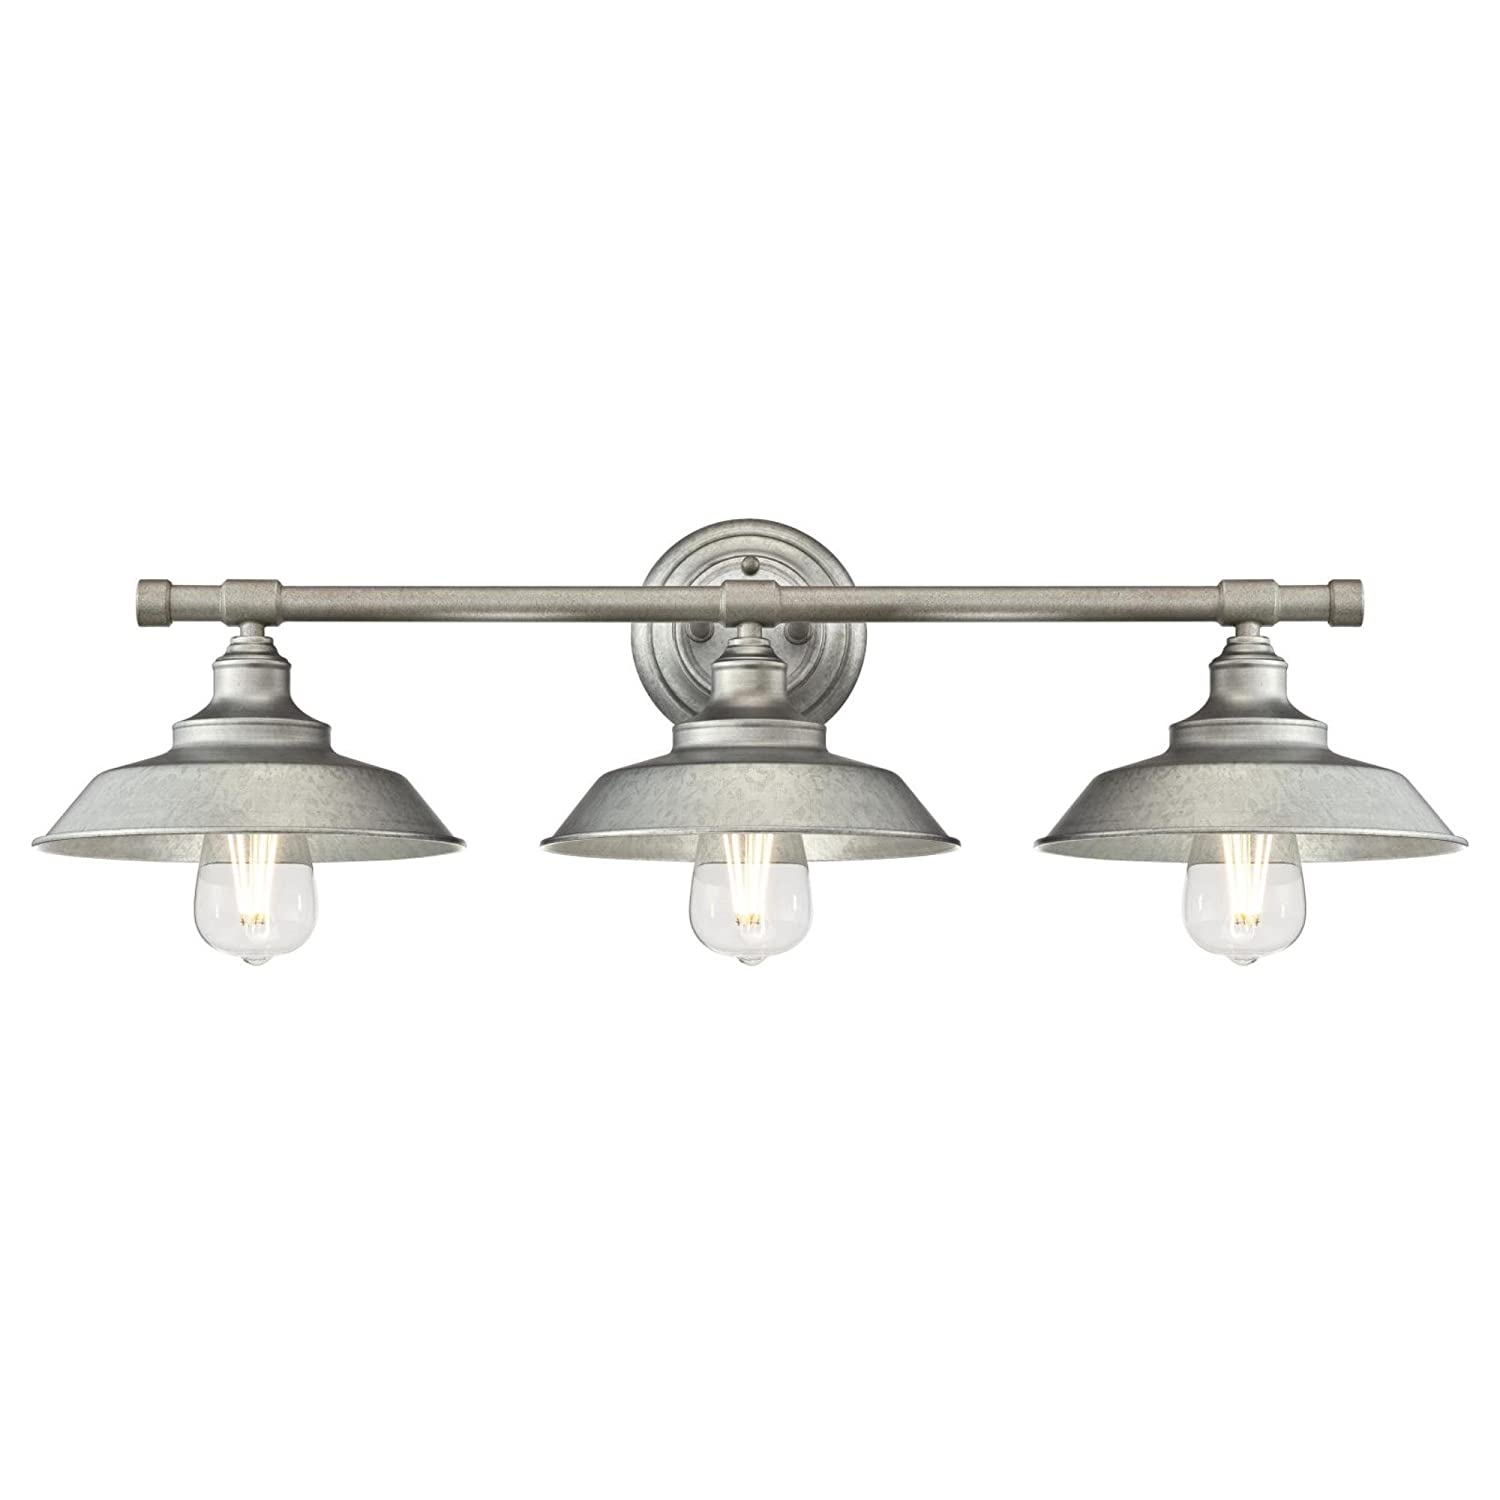 Westinghouse6354700 Iron Hill Three-Light Indoor Wall Fixture, Galvanized Steel Finish with Metal Shades